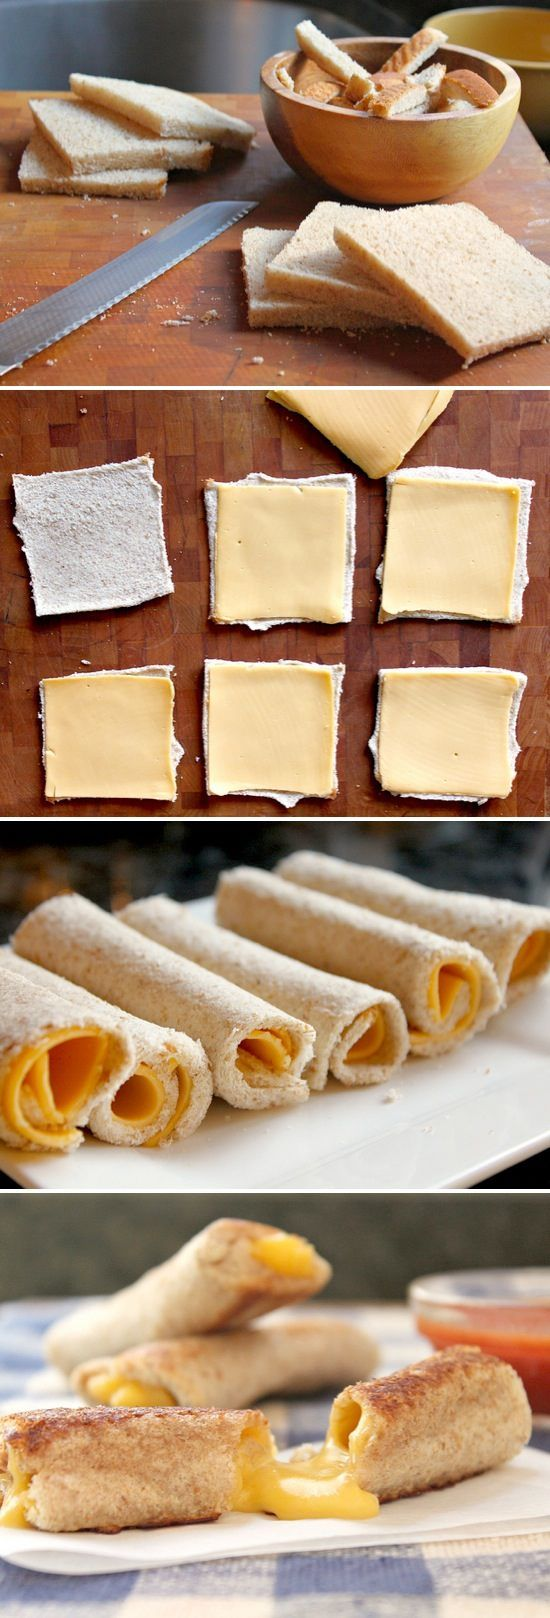 Grilled Cheese Rolls | Takes an ordinary grilled cheese and makes it fun! Great for dipping in soup, too. :)